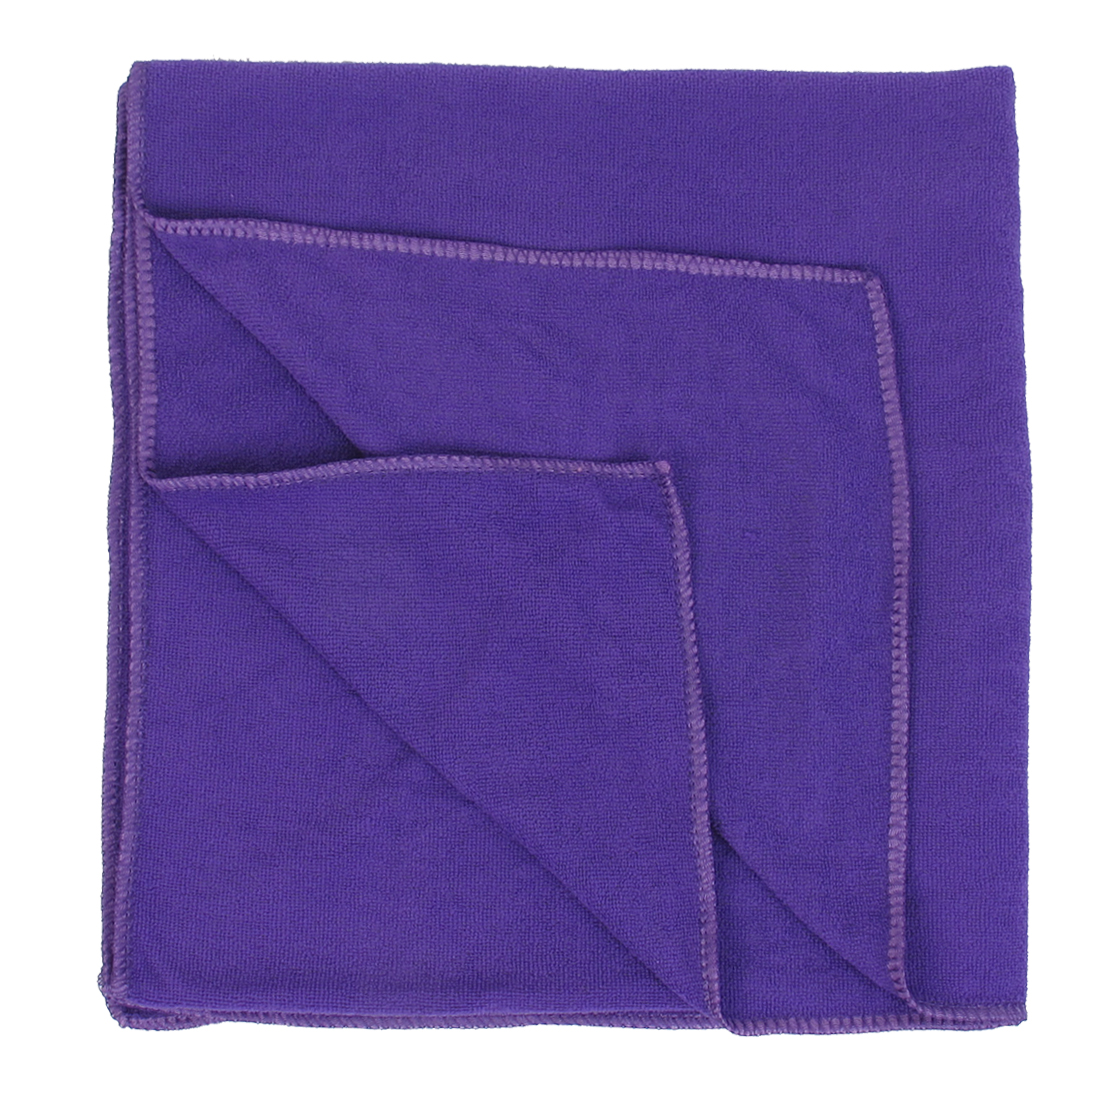 Home Spa Beach Hotel 140cm x 70cm Purple Terry Rectangle Bath Shower Towel Sheet Washcloth